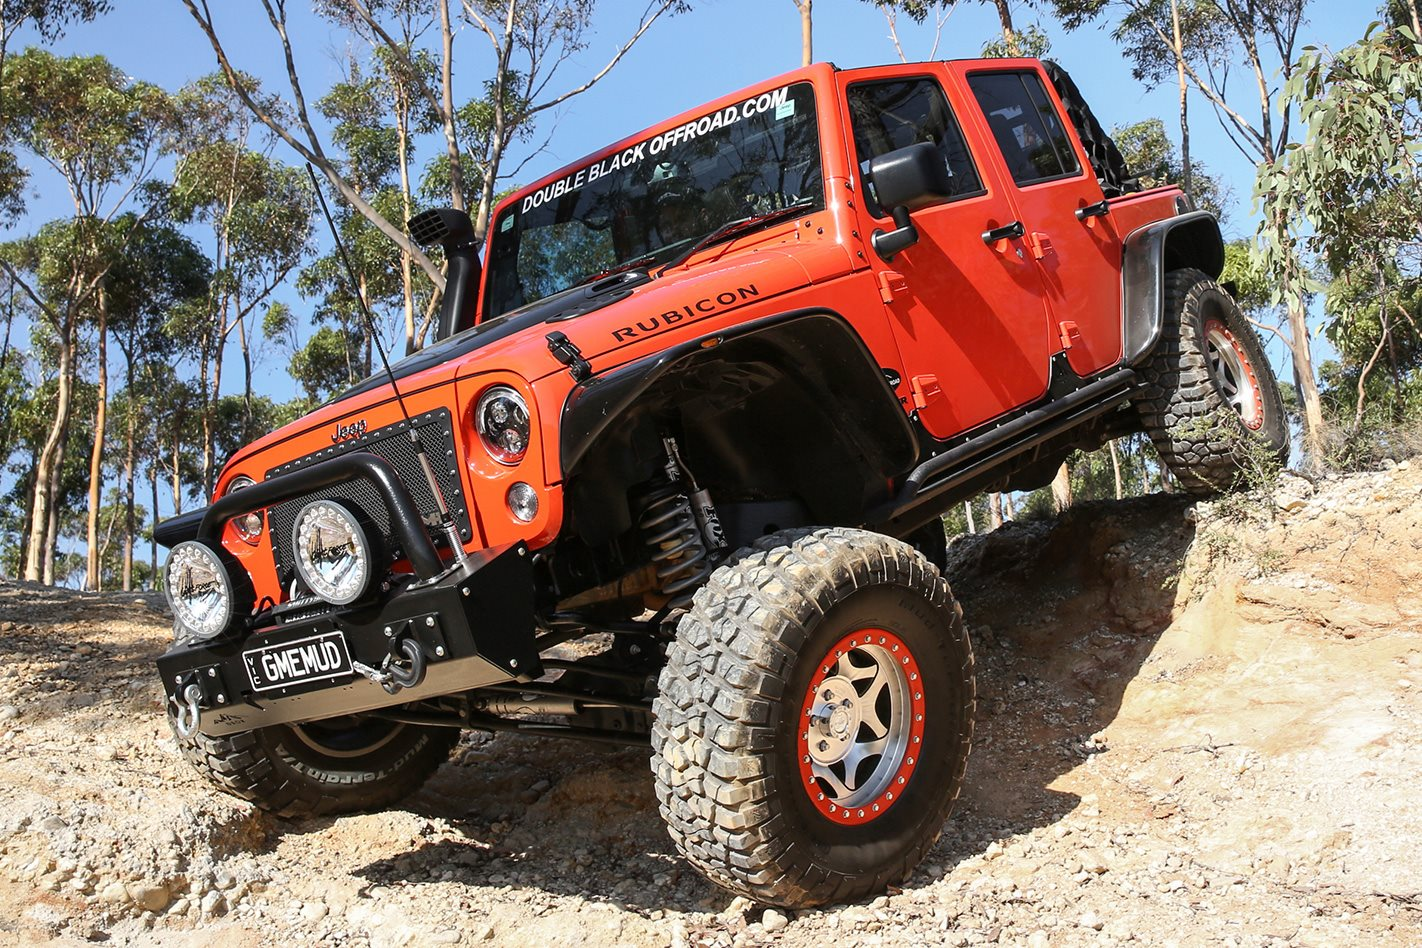 2015 Jeep JK Unlimited Wrangler Rubicon video offroad